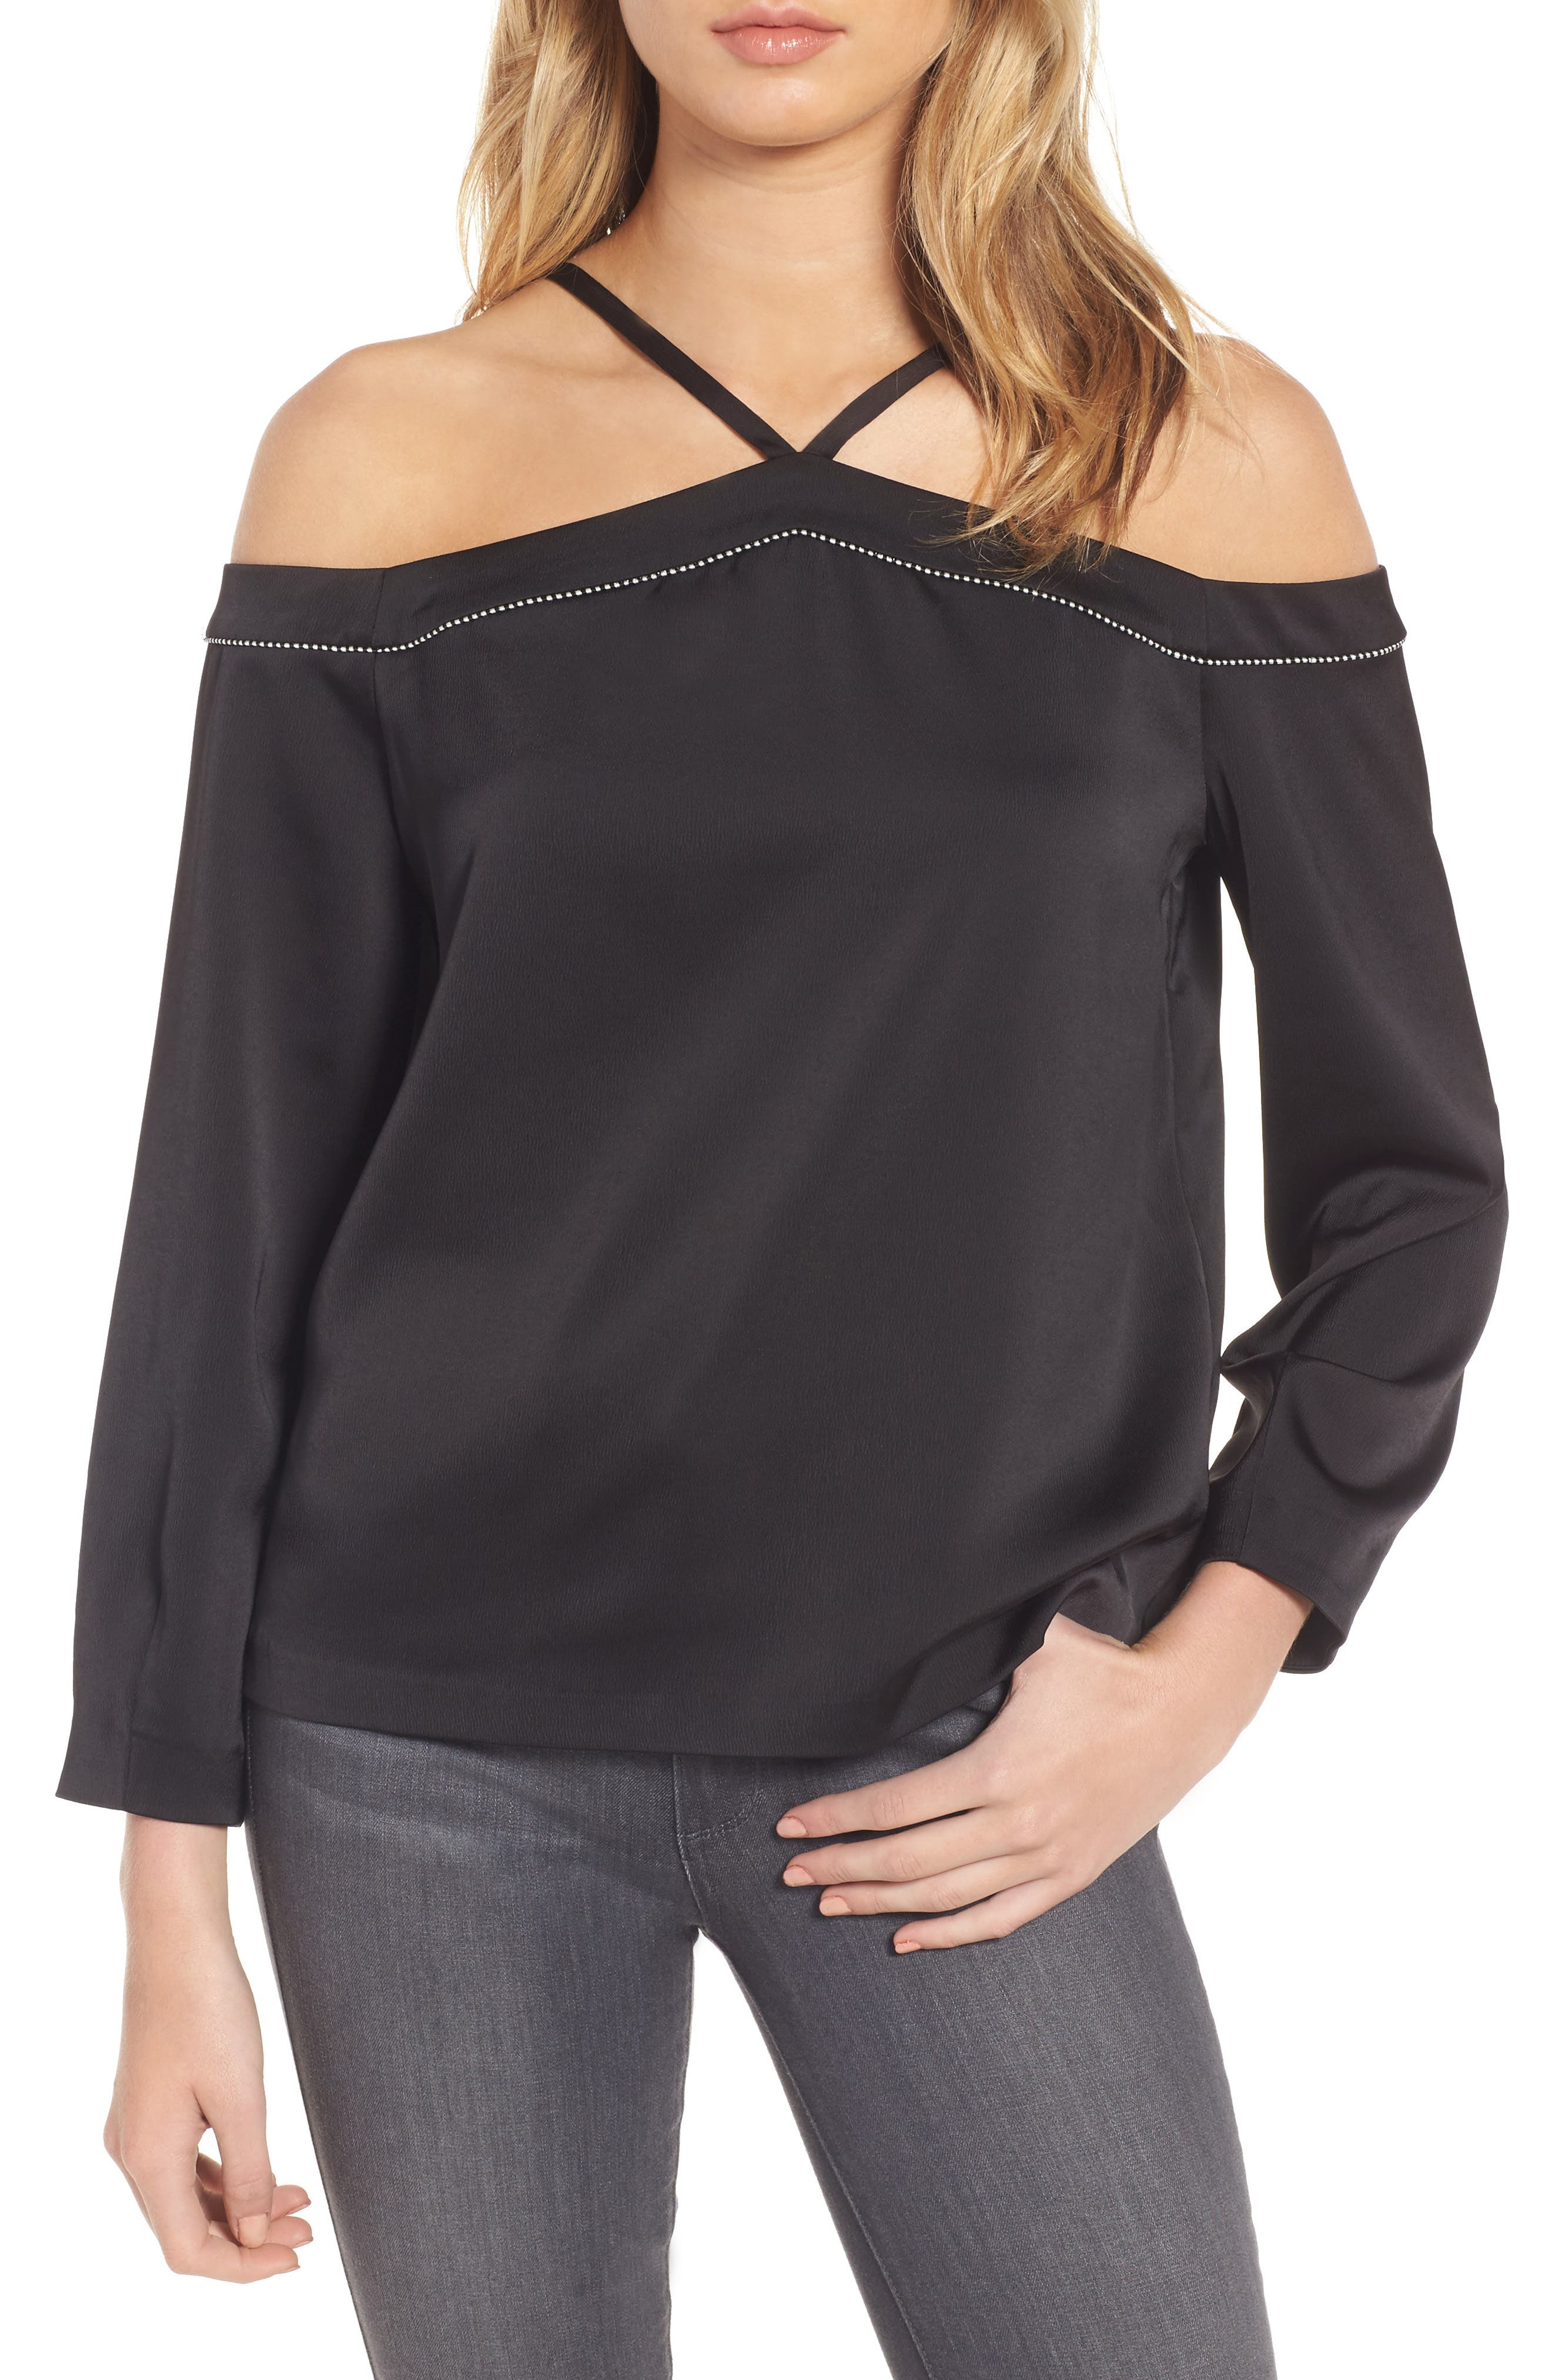 COOPER & ELLA Joline Off the Shoulder Top